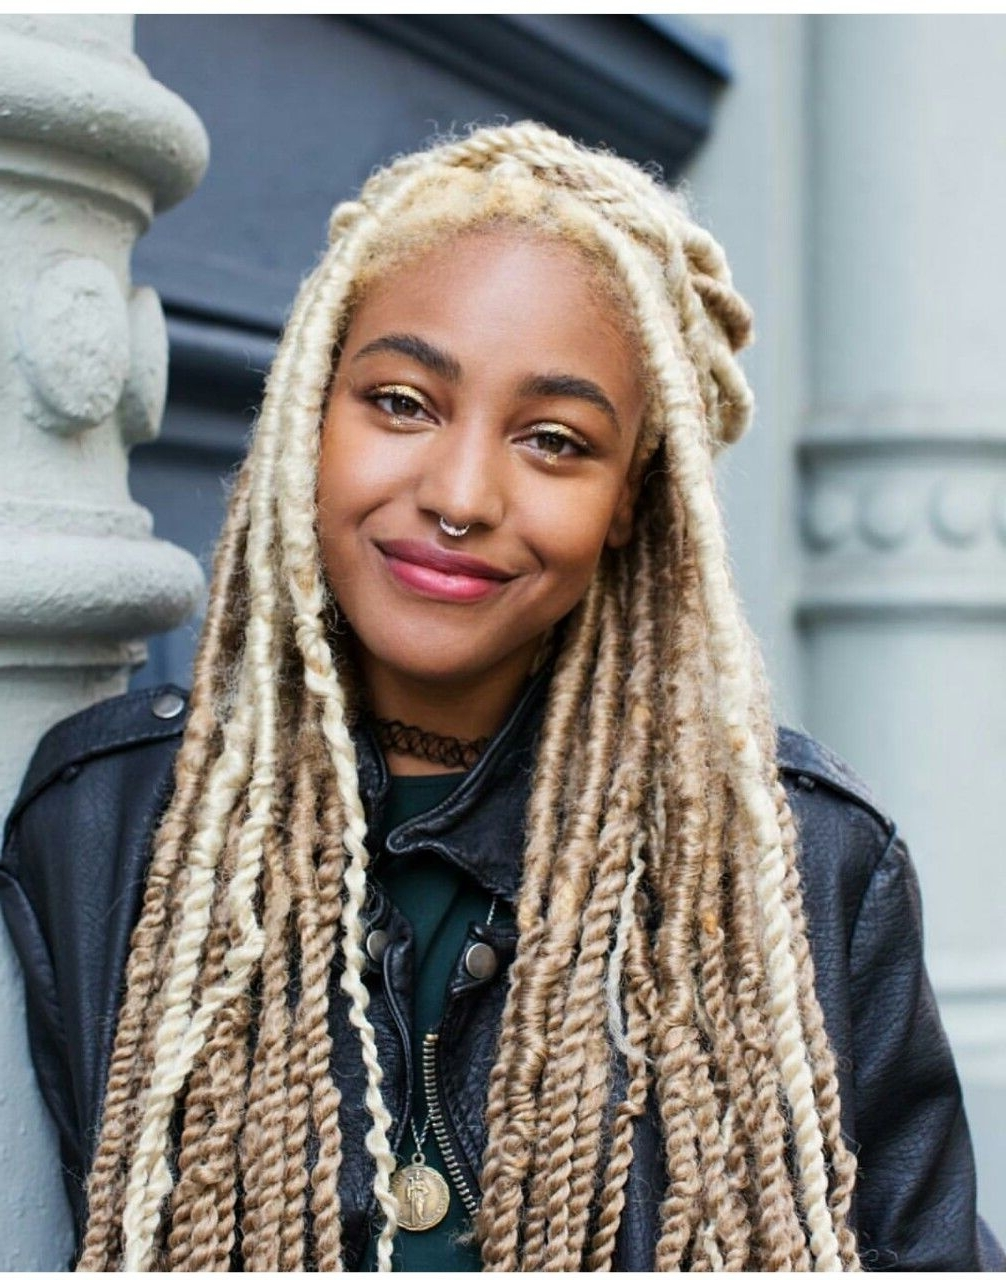 Recent Platinum Blonde Long Locks Hairstyles Intended For These Platinum Blonde Marley Twists Are Super Cute. // #hair (Gallery 3 of 20)